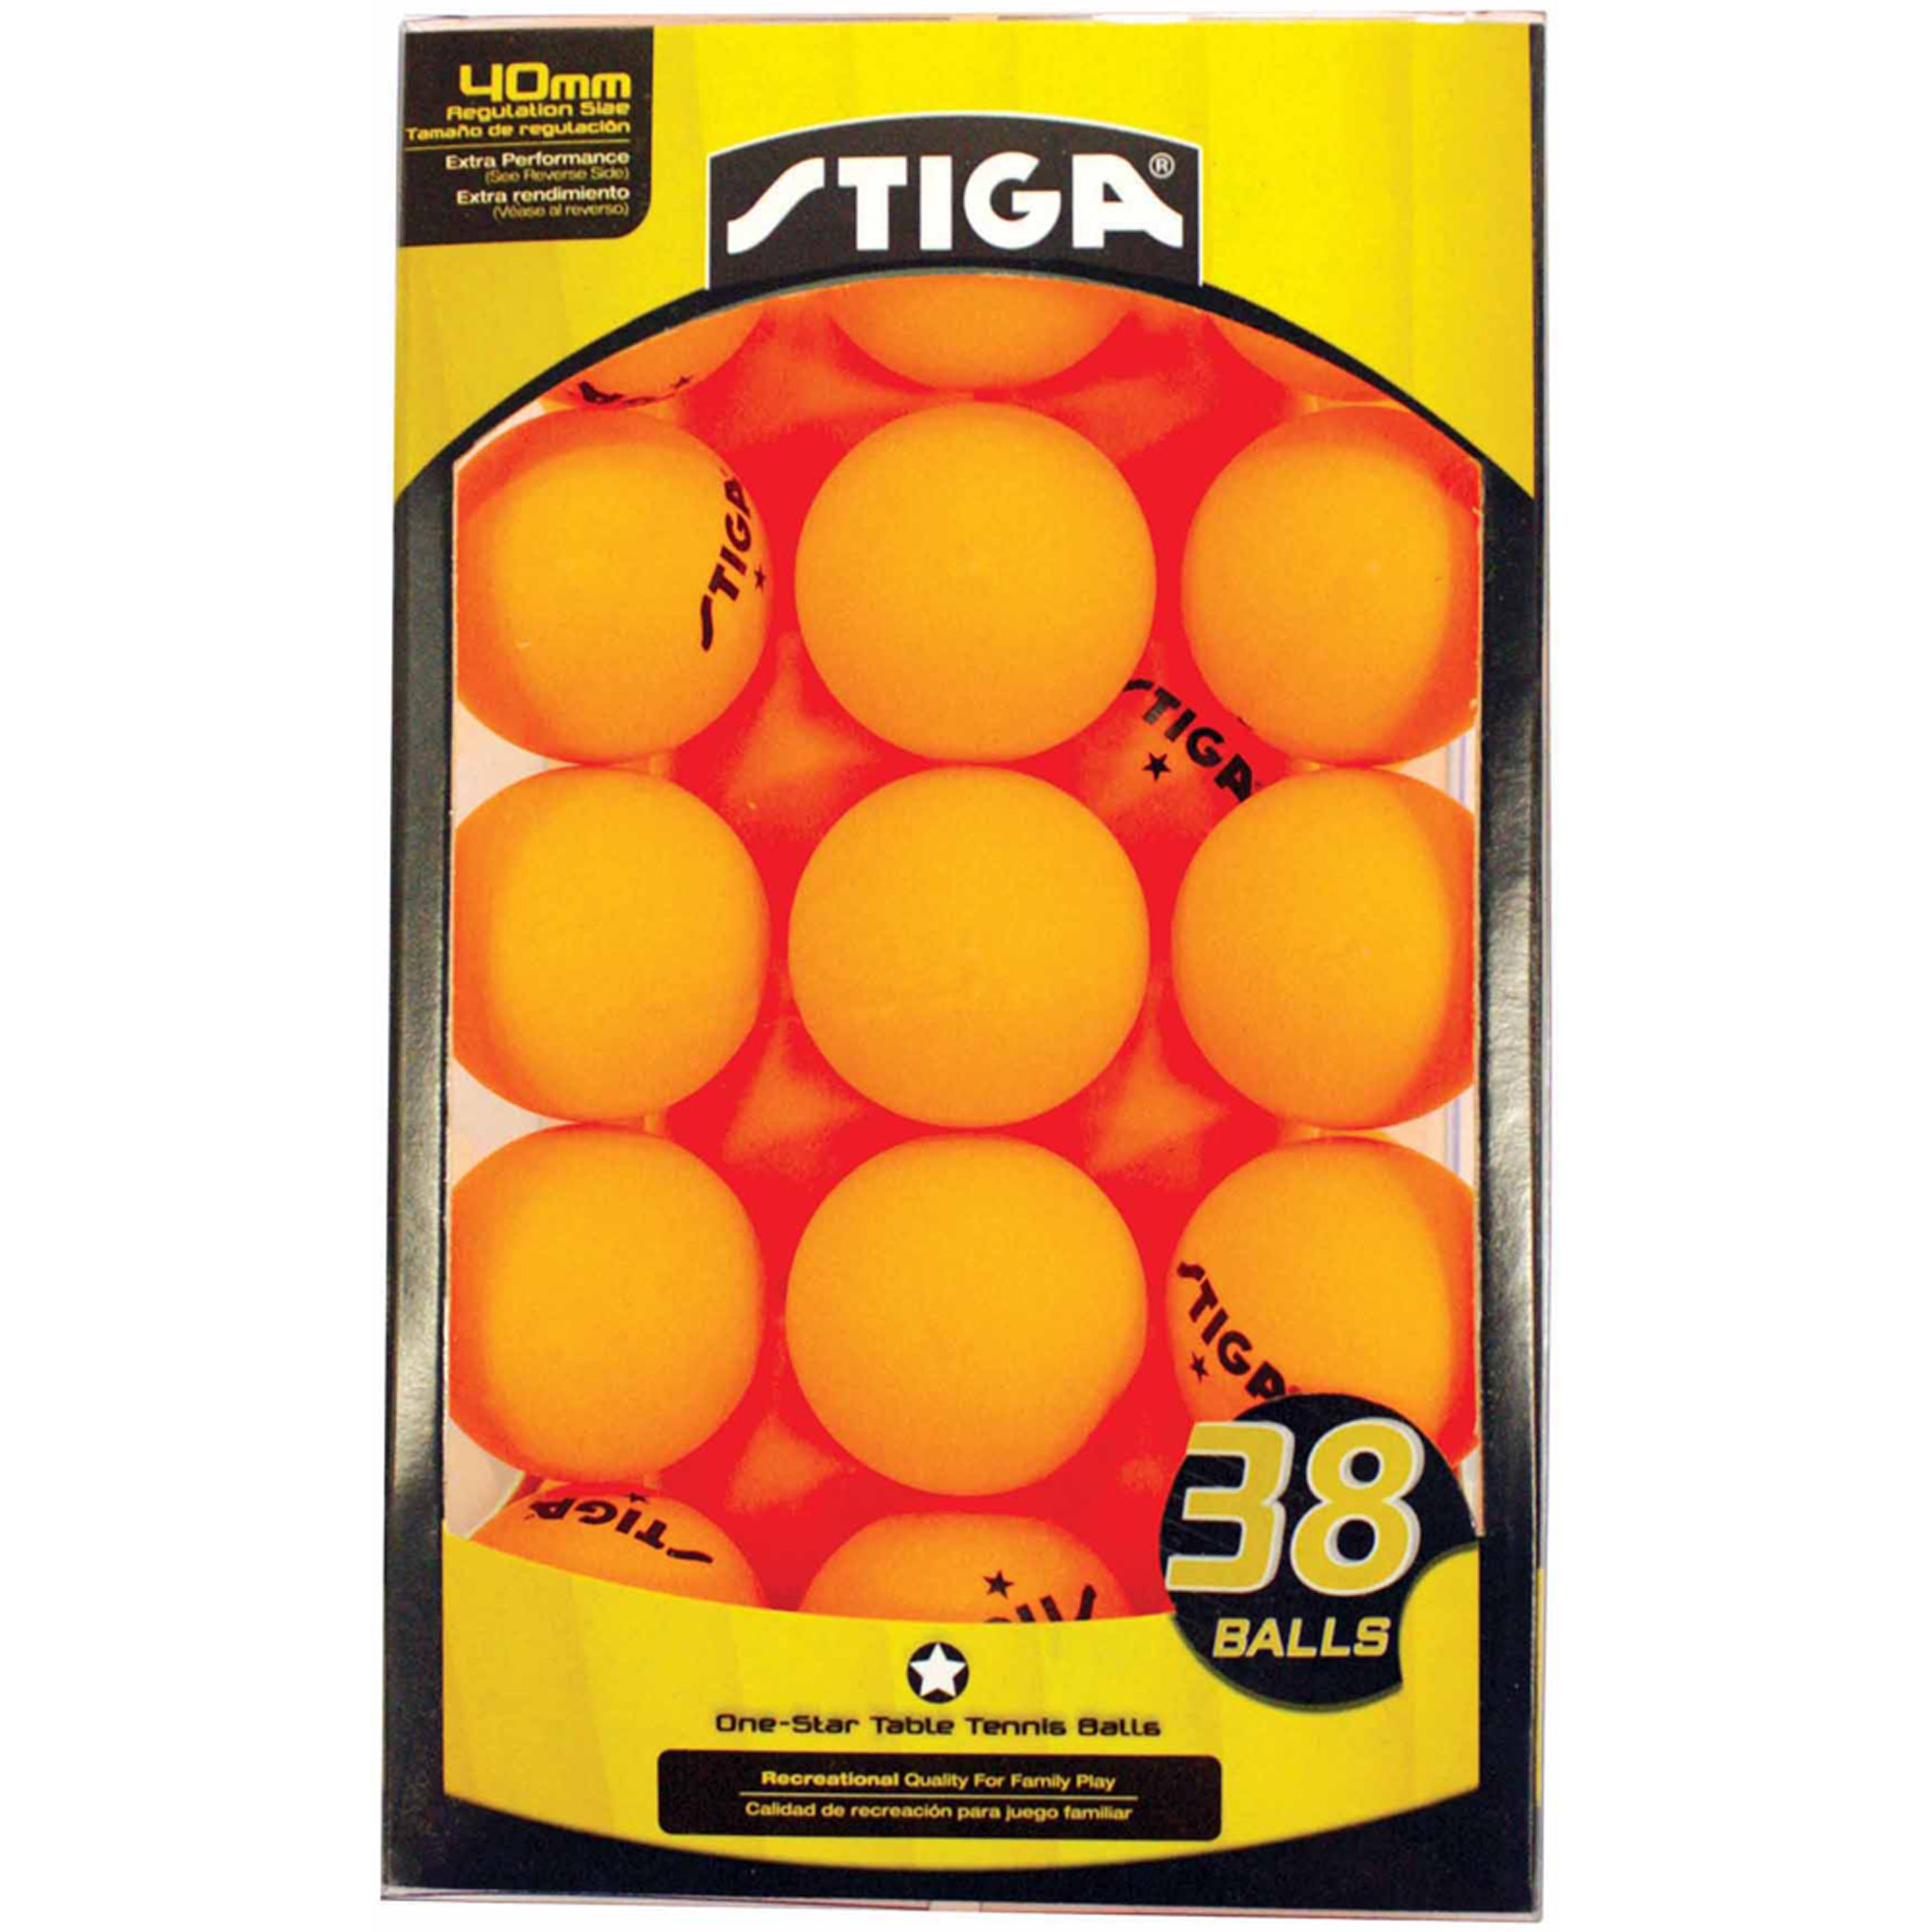 STIGA 1-Star Table Tennis Balls, 38pk